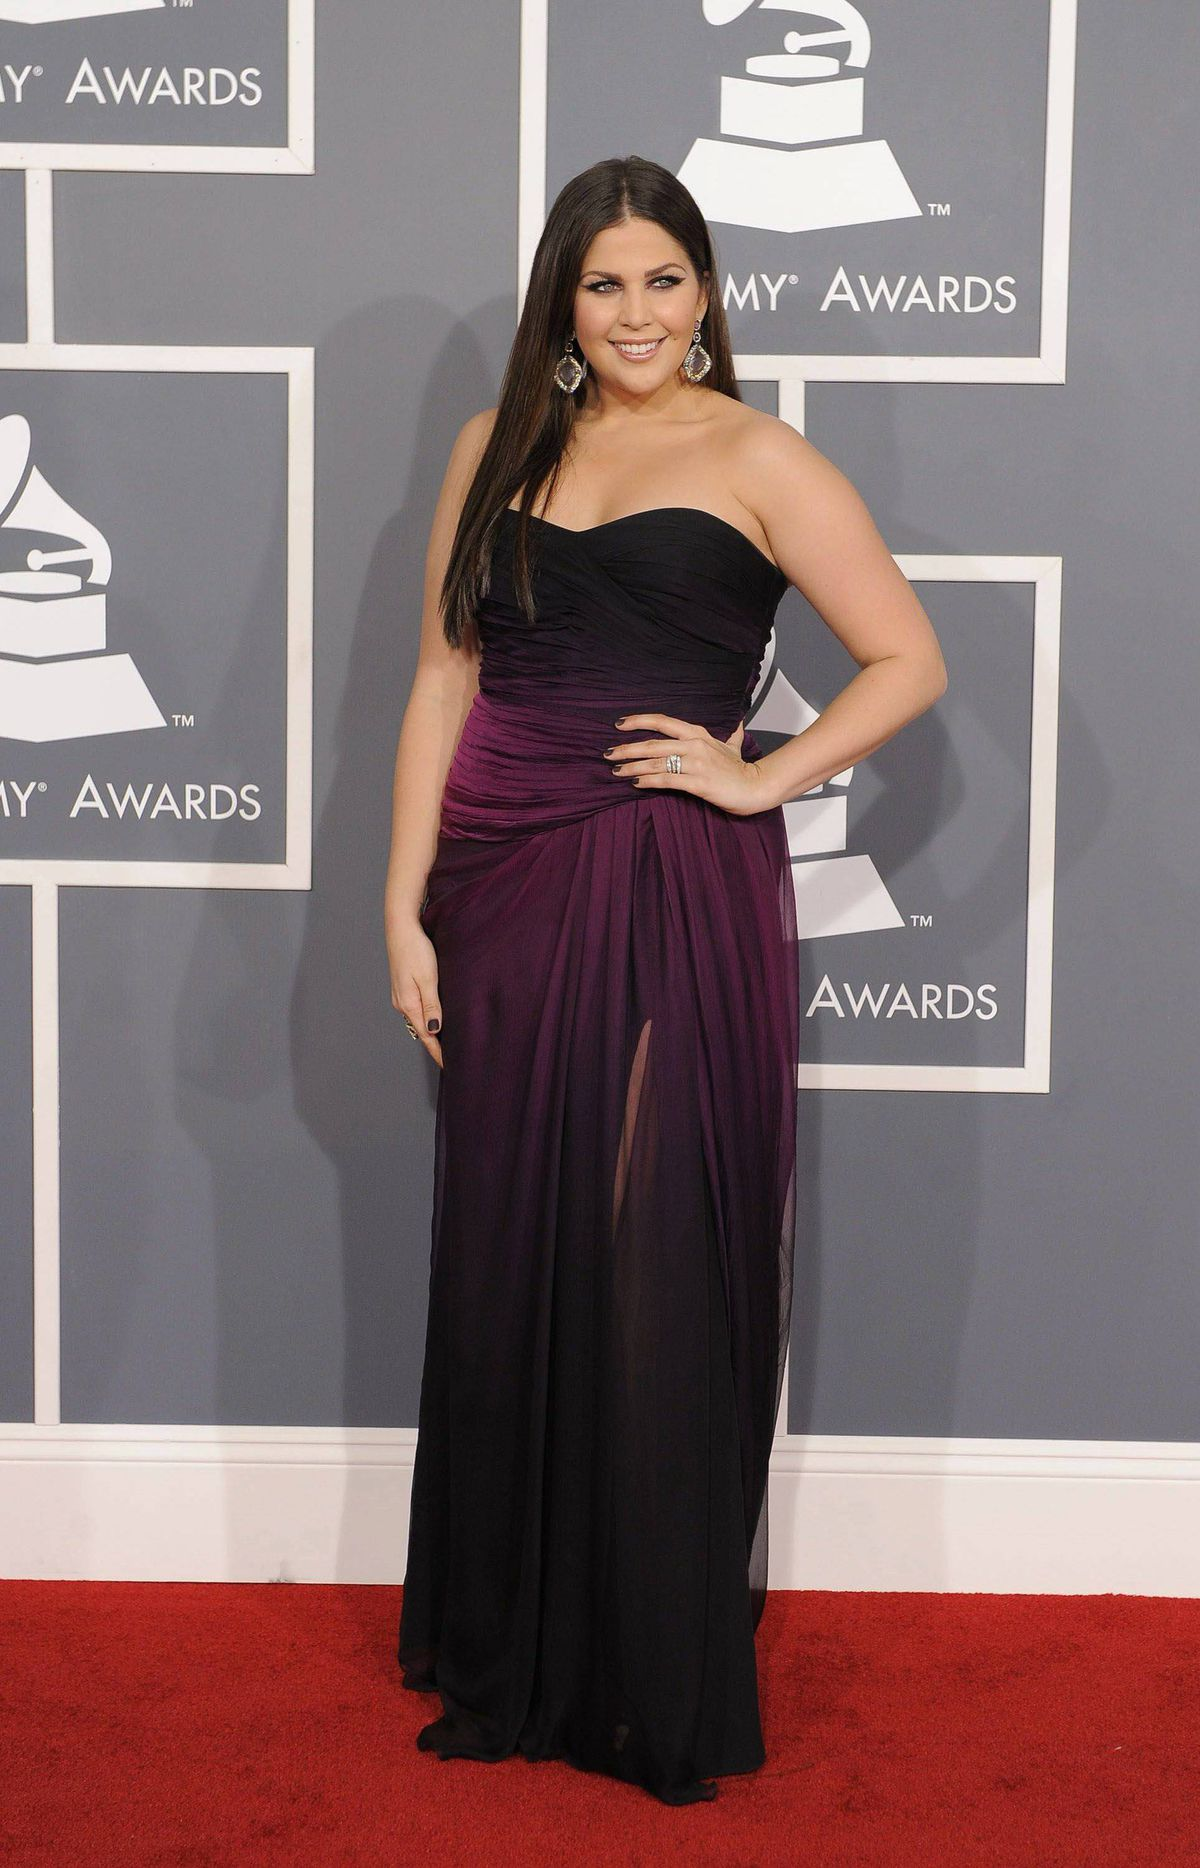 Hillary Scott, of musical group Lady Antebellum, arrives at the 54th annual Grammy Awards on Sunday, Feb. 12, 2012 in Los Angeles